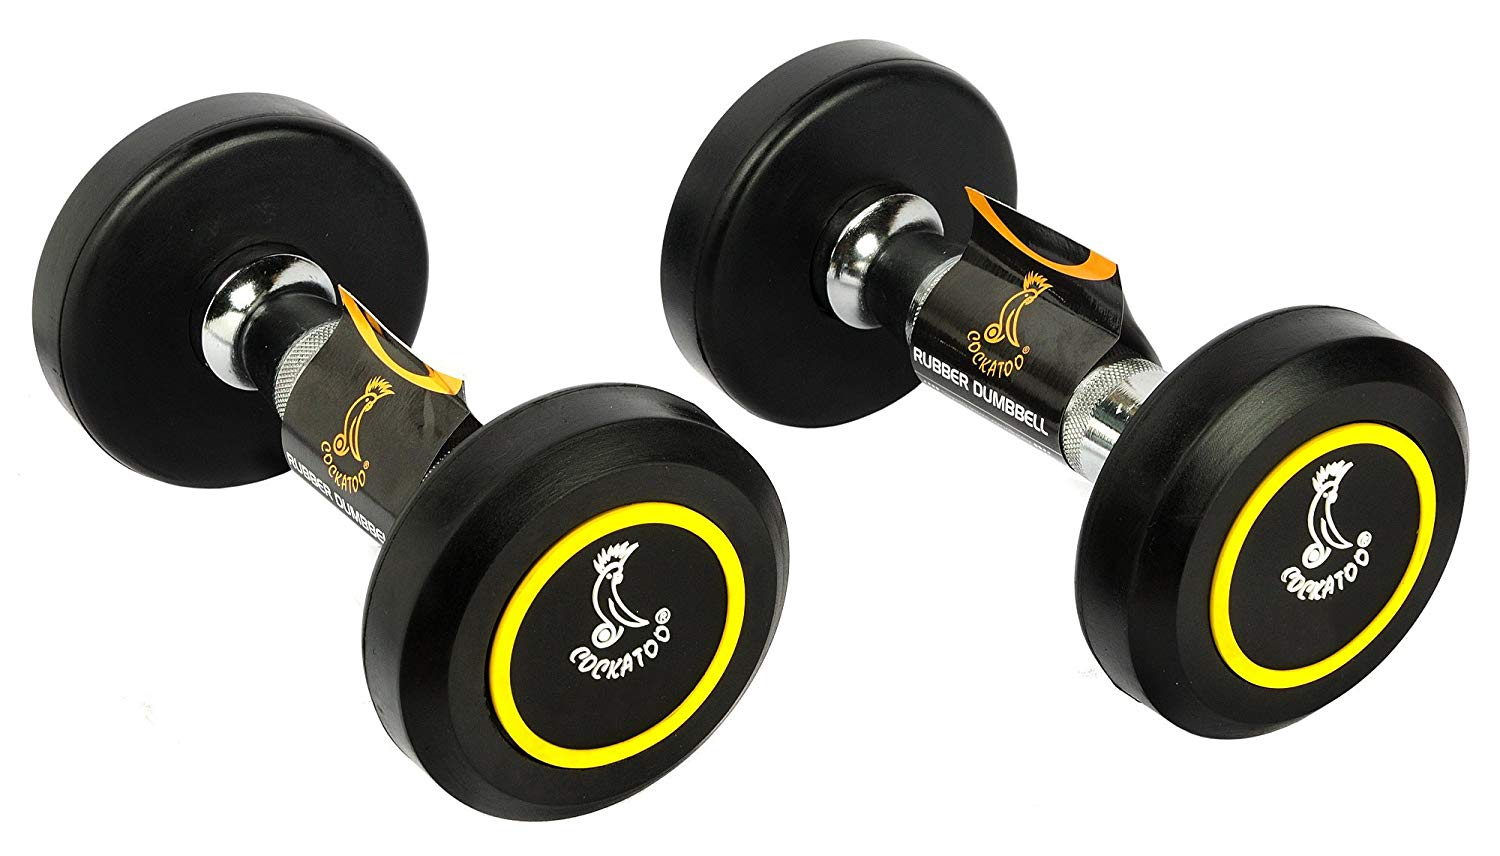 Cockatoo Professional Rubber Coated Round Dumbbells